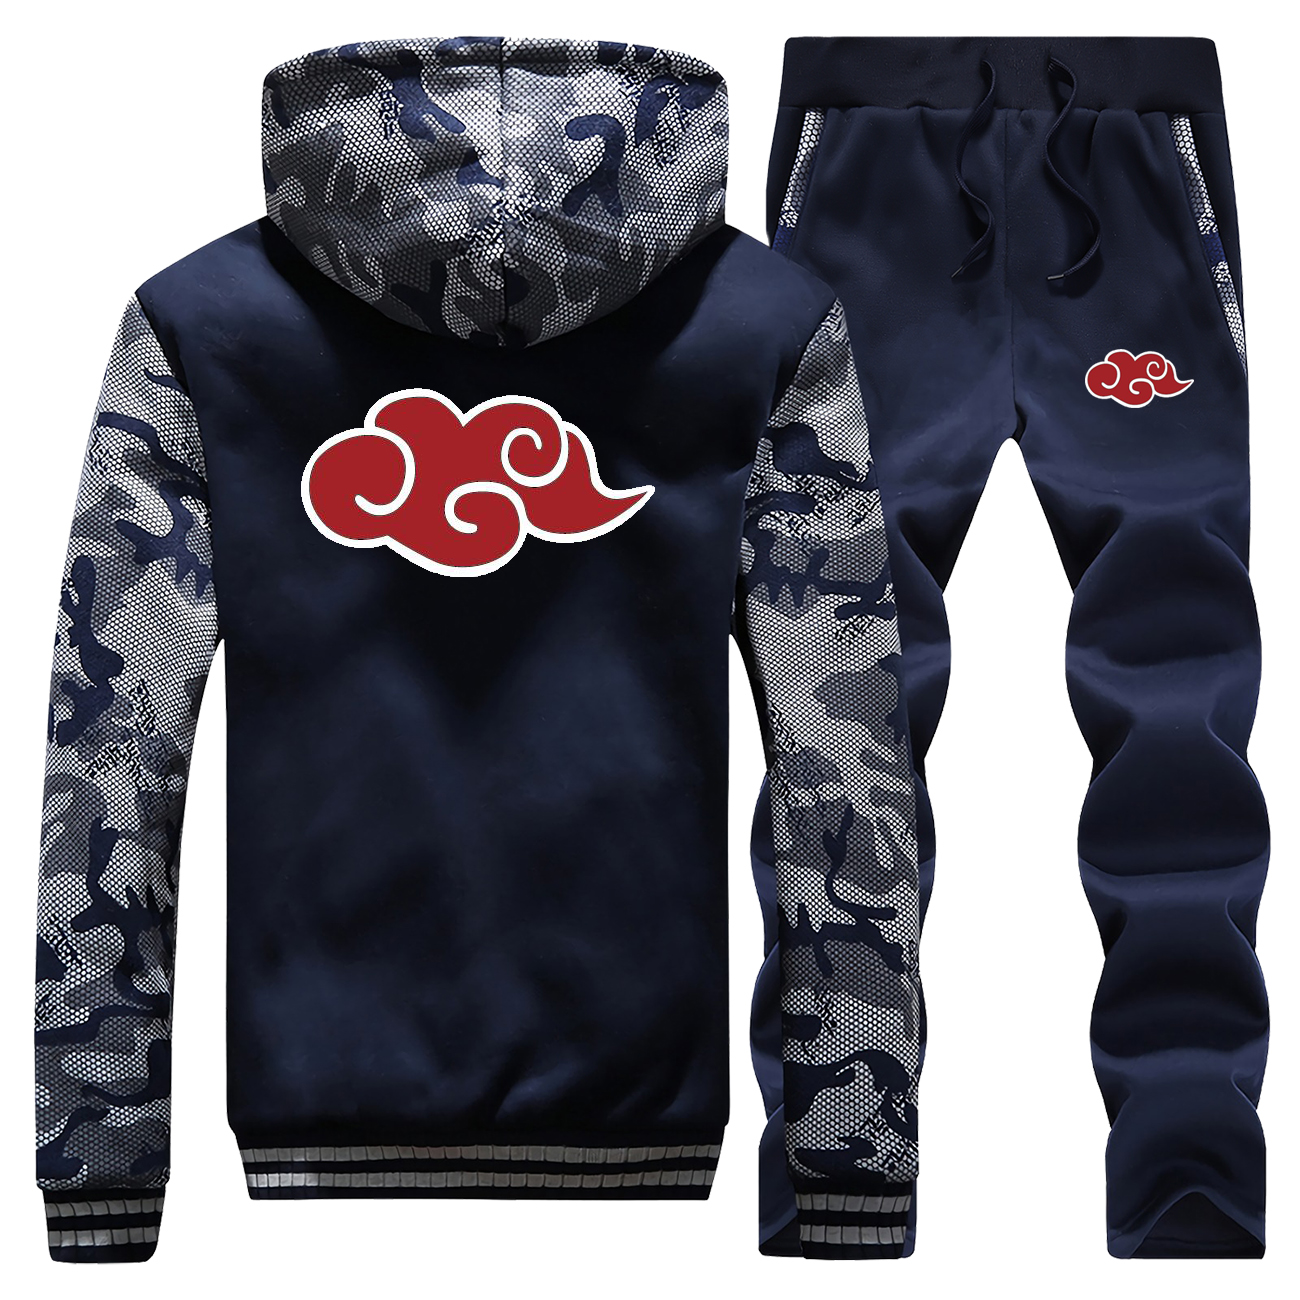 NARUTO Hoodies Pants Set Men Japan Anime Akatsuki Tracksuit Coat Suit Winter Thick Fleece Jacket Camo Plus Size 2 Piece Sets